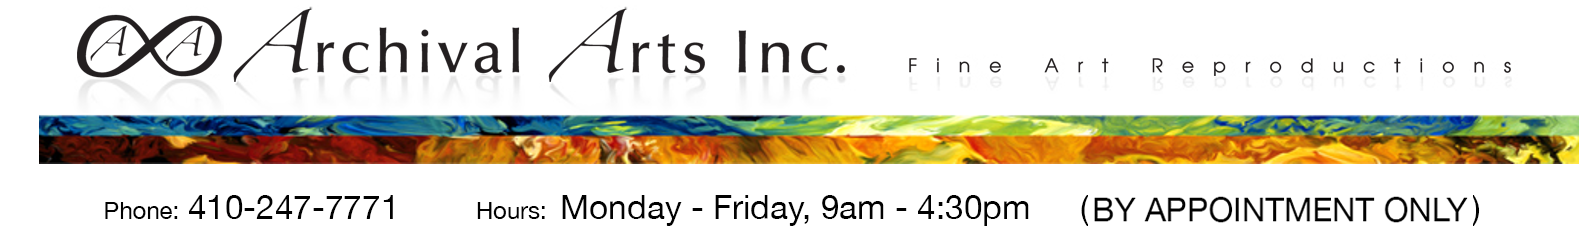 Archival Arts Inc. Logo